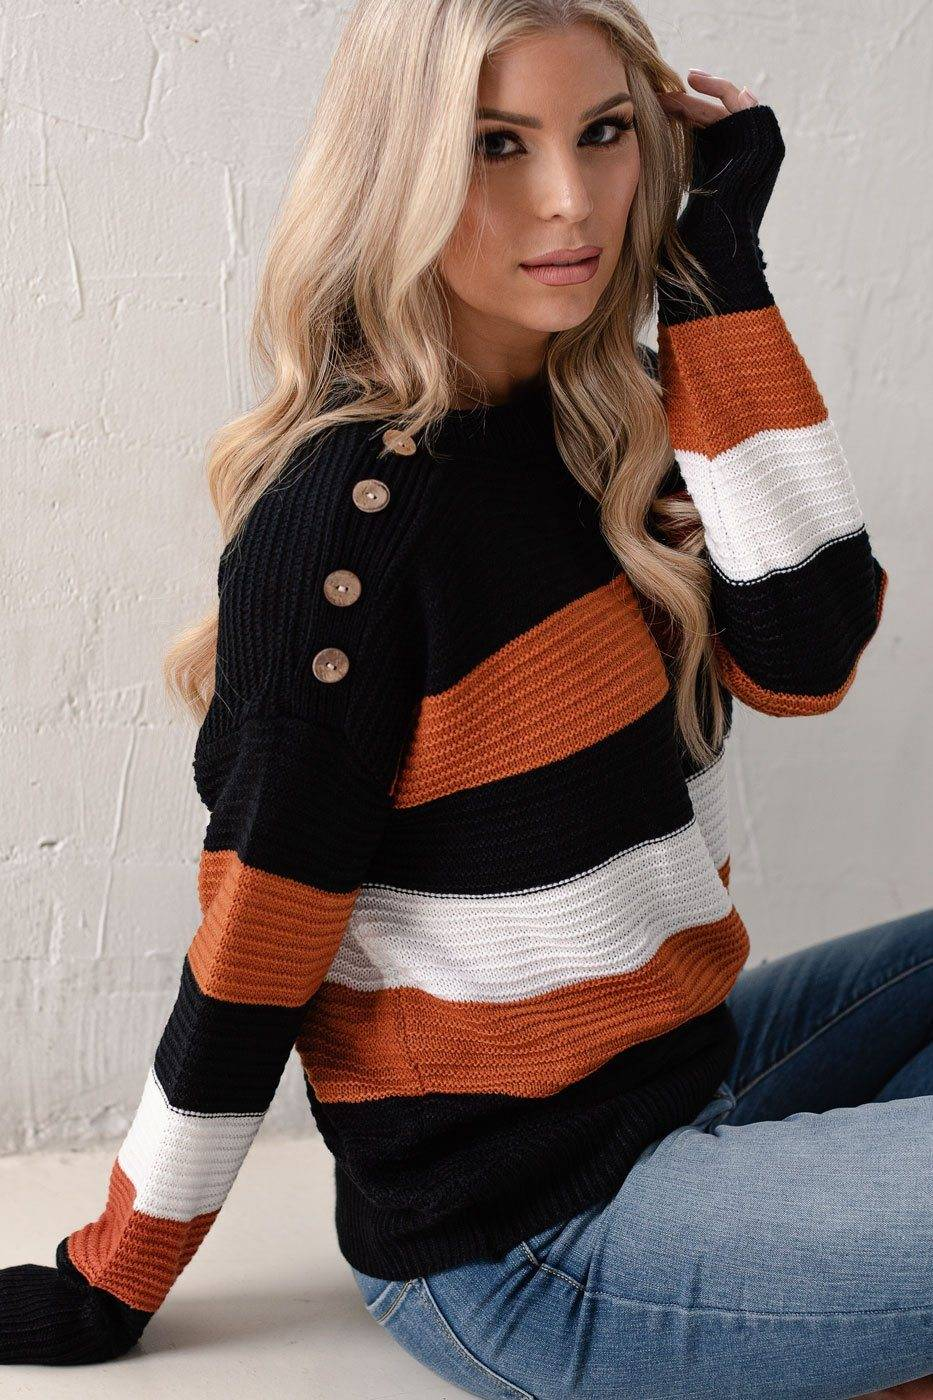 Lily Clothing Never Change Rust Striped Knit Sweater  - G1449 Black Small